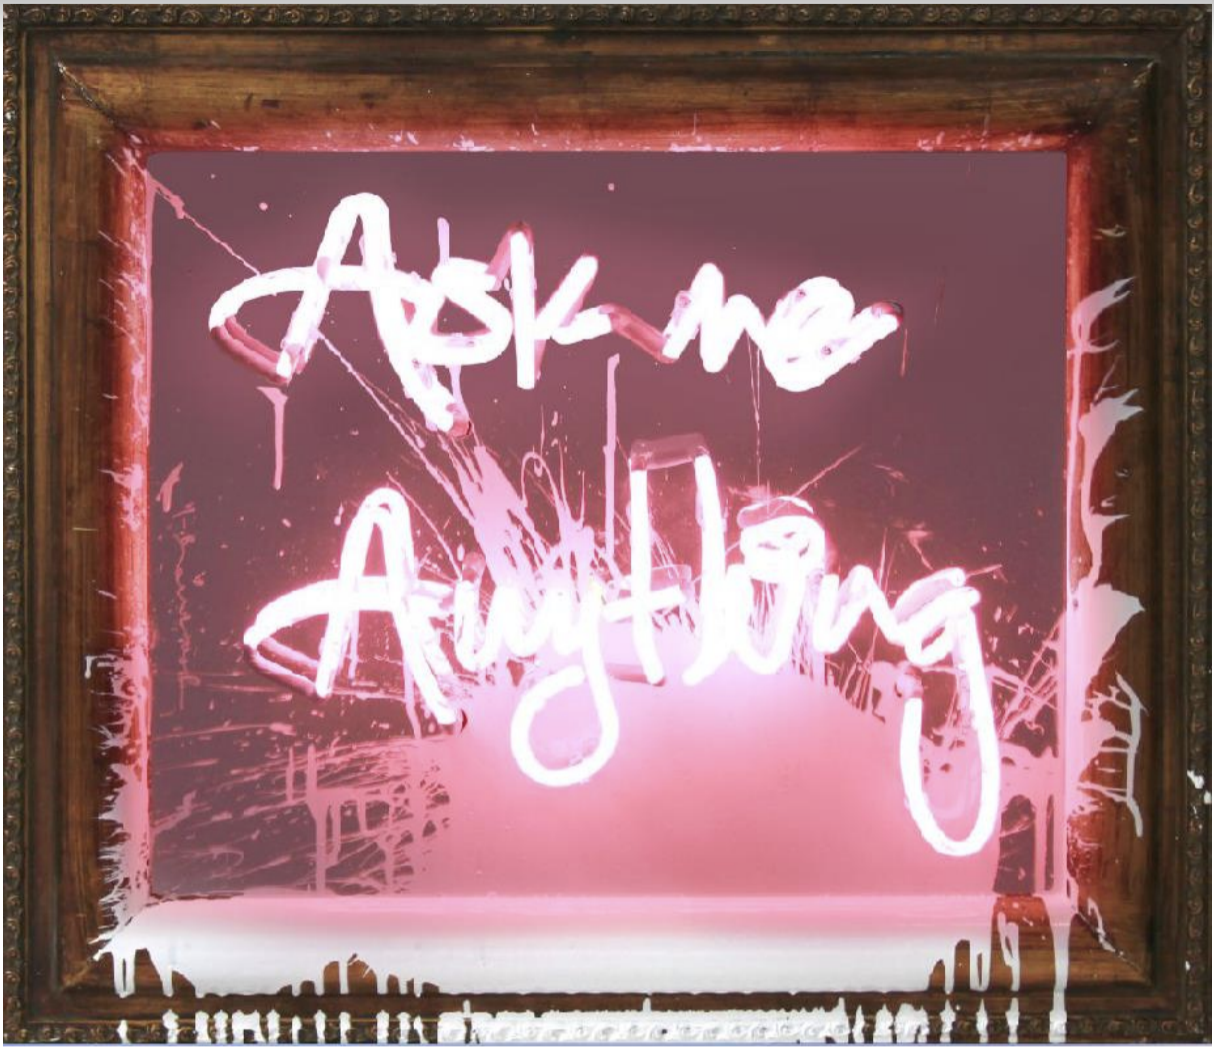 Ask Me Anything by Mr. Brainwash